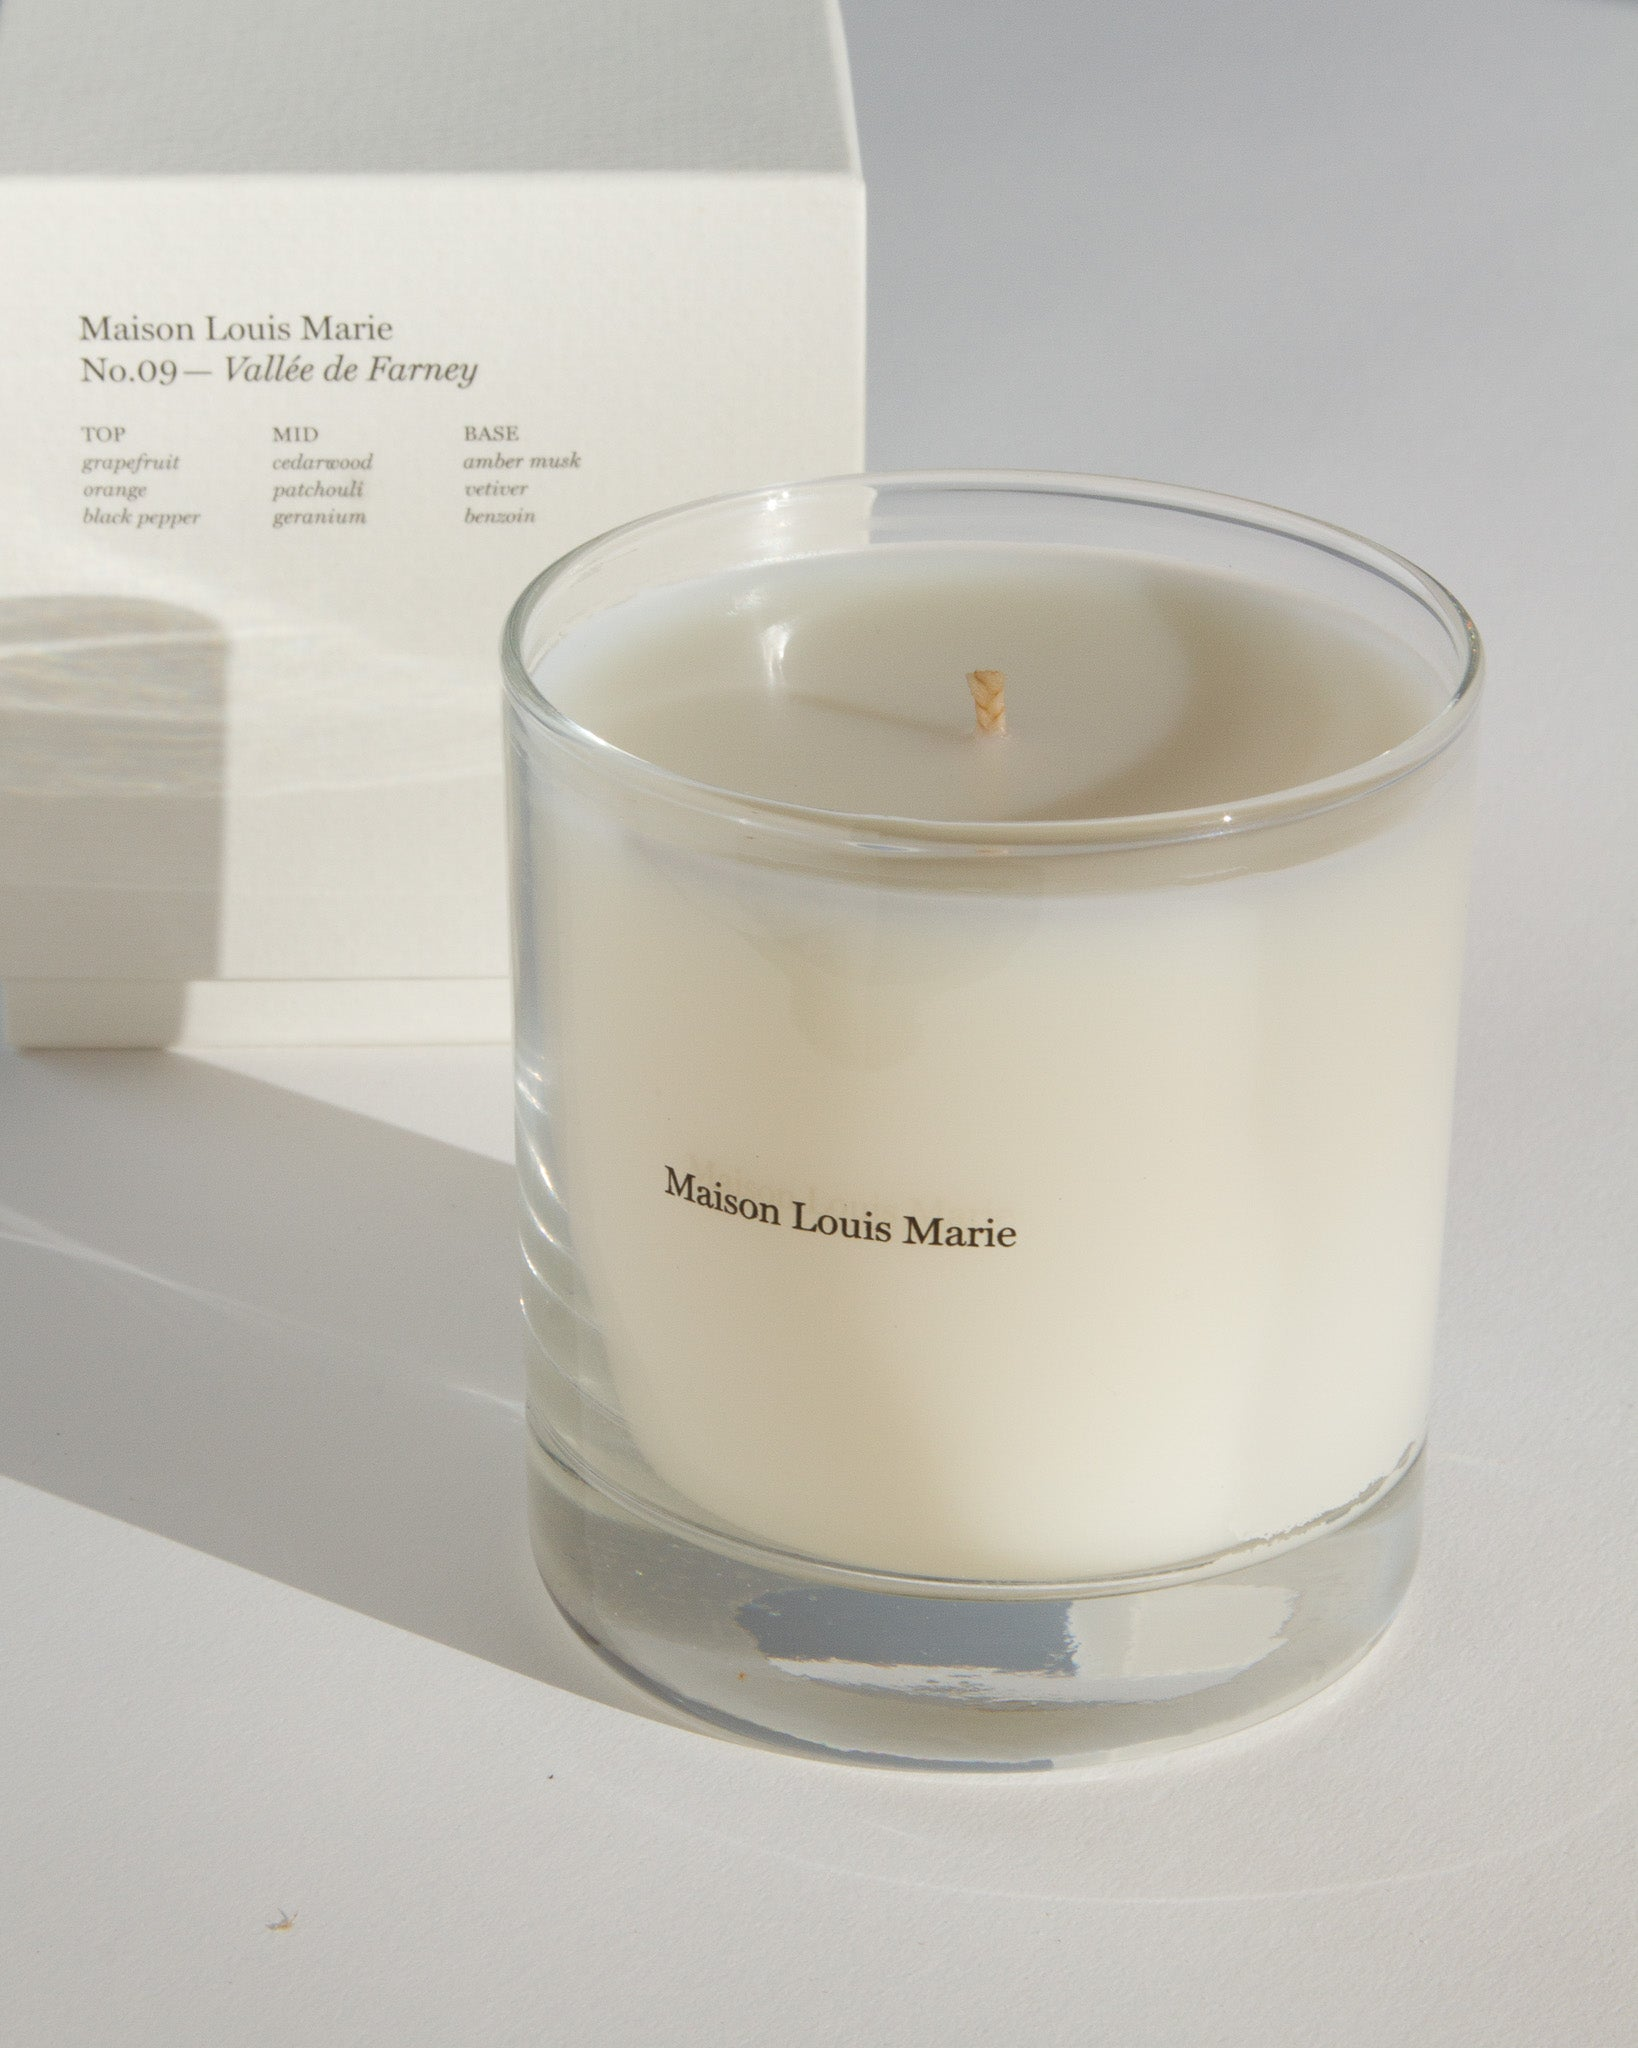 No. 09 - Vallée de Farney Candle